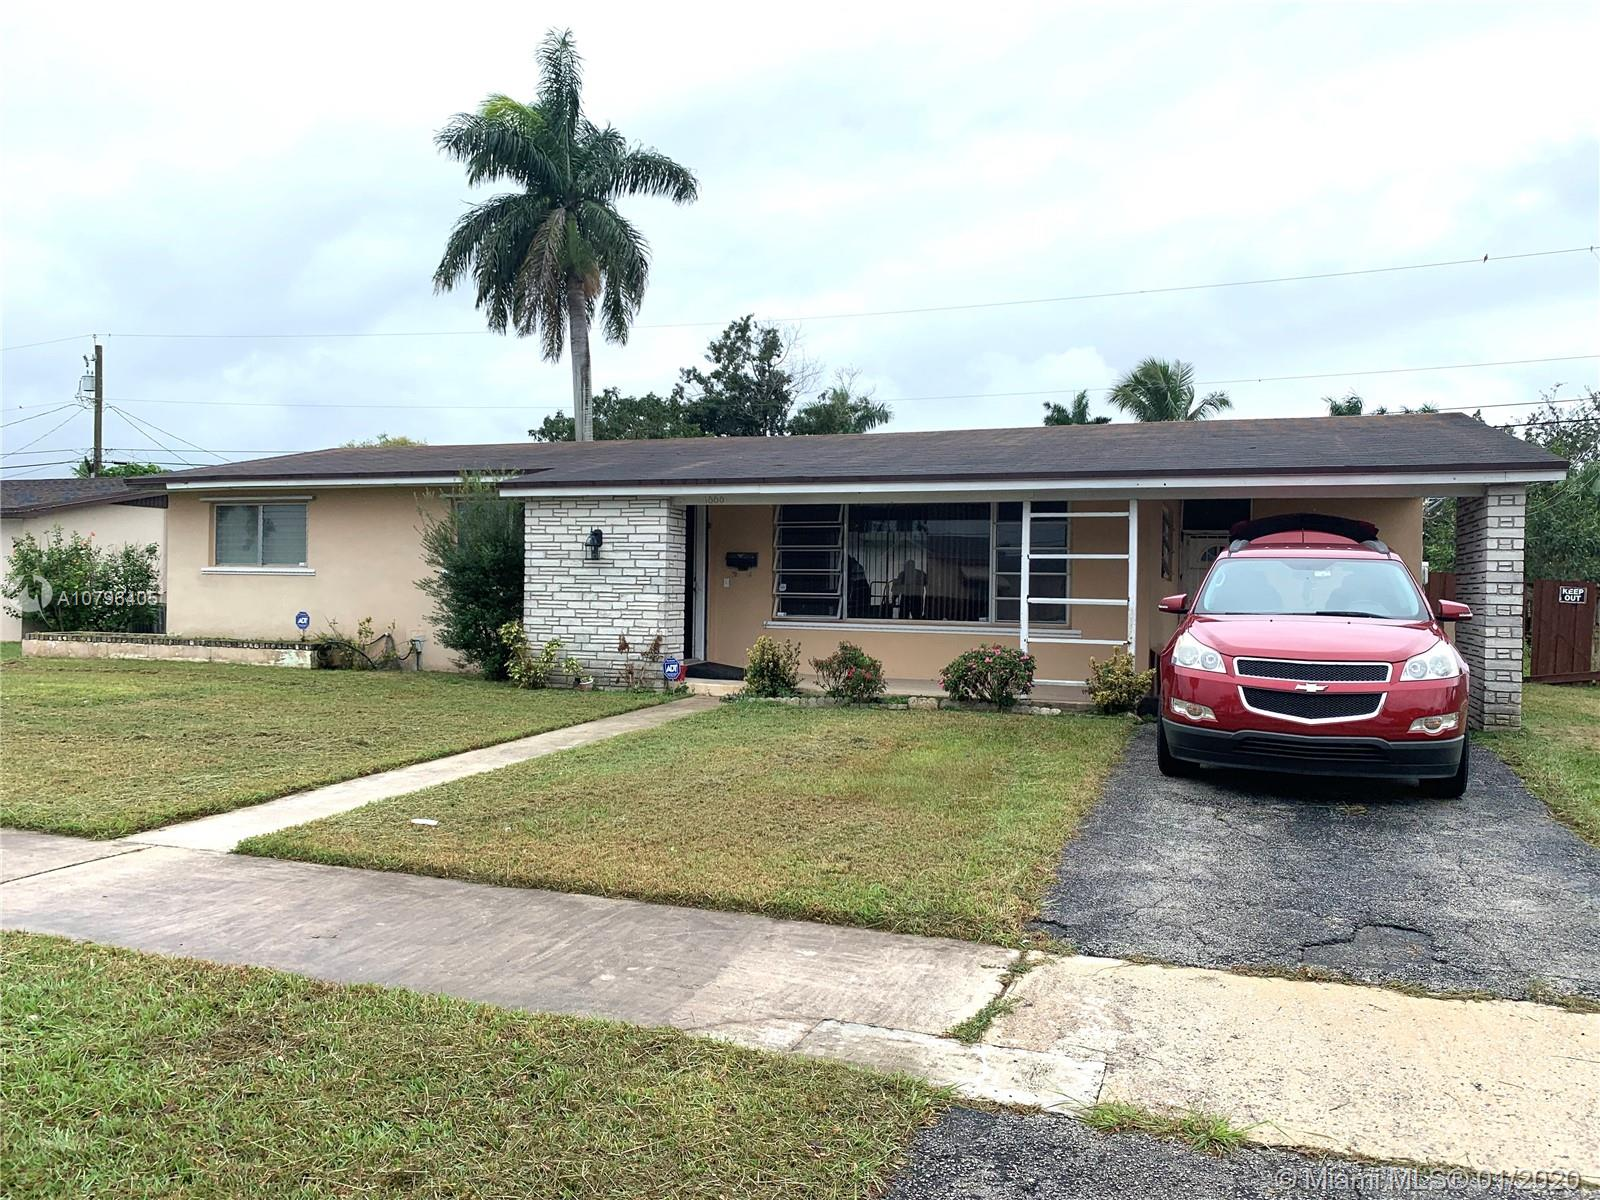 1666 NW 8th Ter, Homestead, FL 33030 - Homestead, FL real estate listing